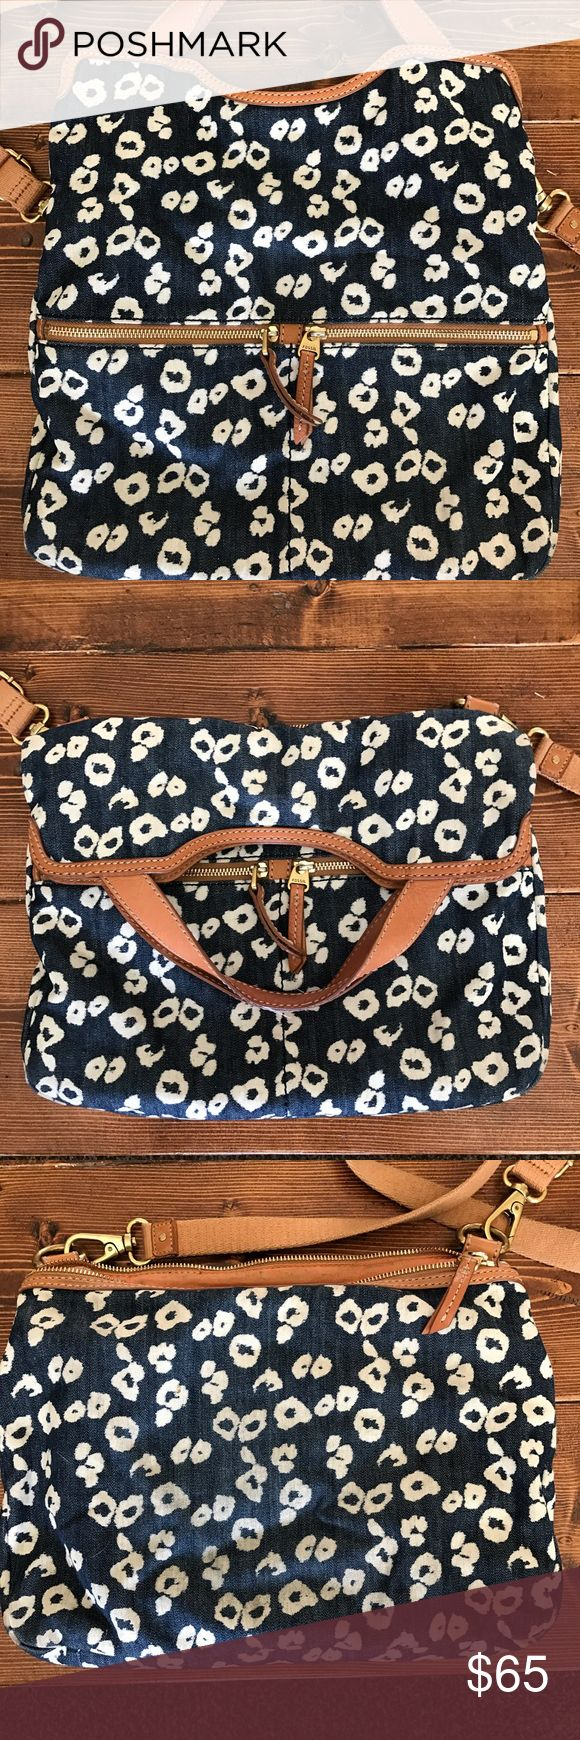 Fossil Bag Denim leopard fossil bag. Comes with duster bag Fossil Bags Crossbody Bags